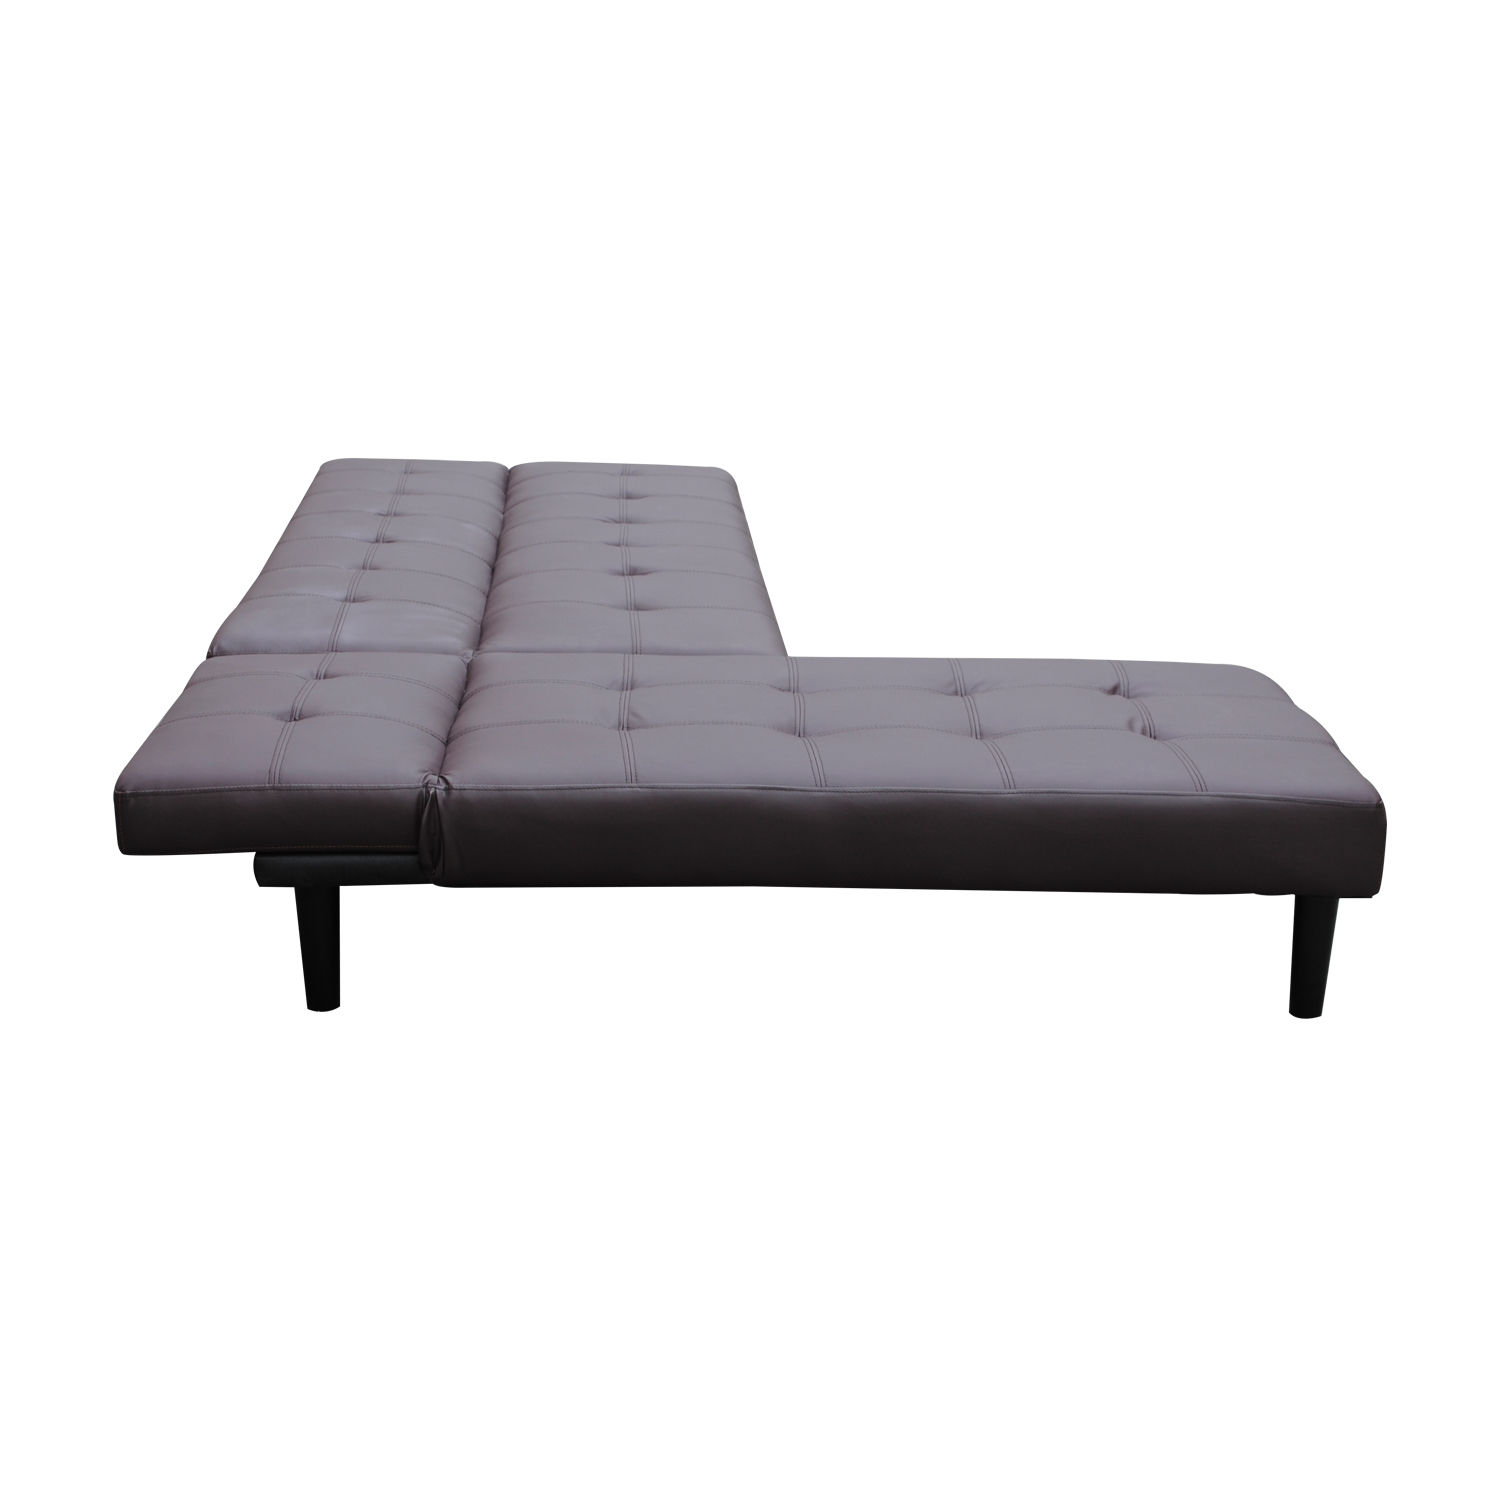 longue resting chaise floral sofas charcoal and fabric unit lounge sofa gray bed with lounging